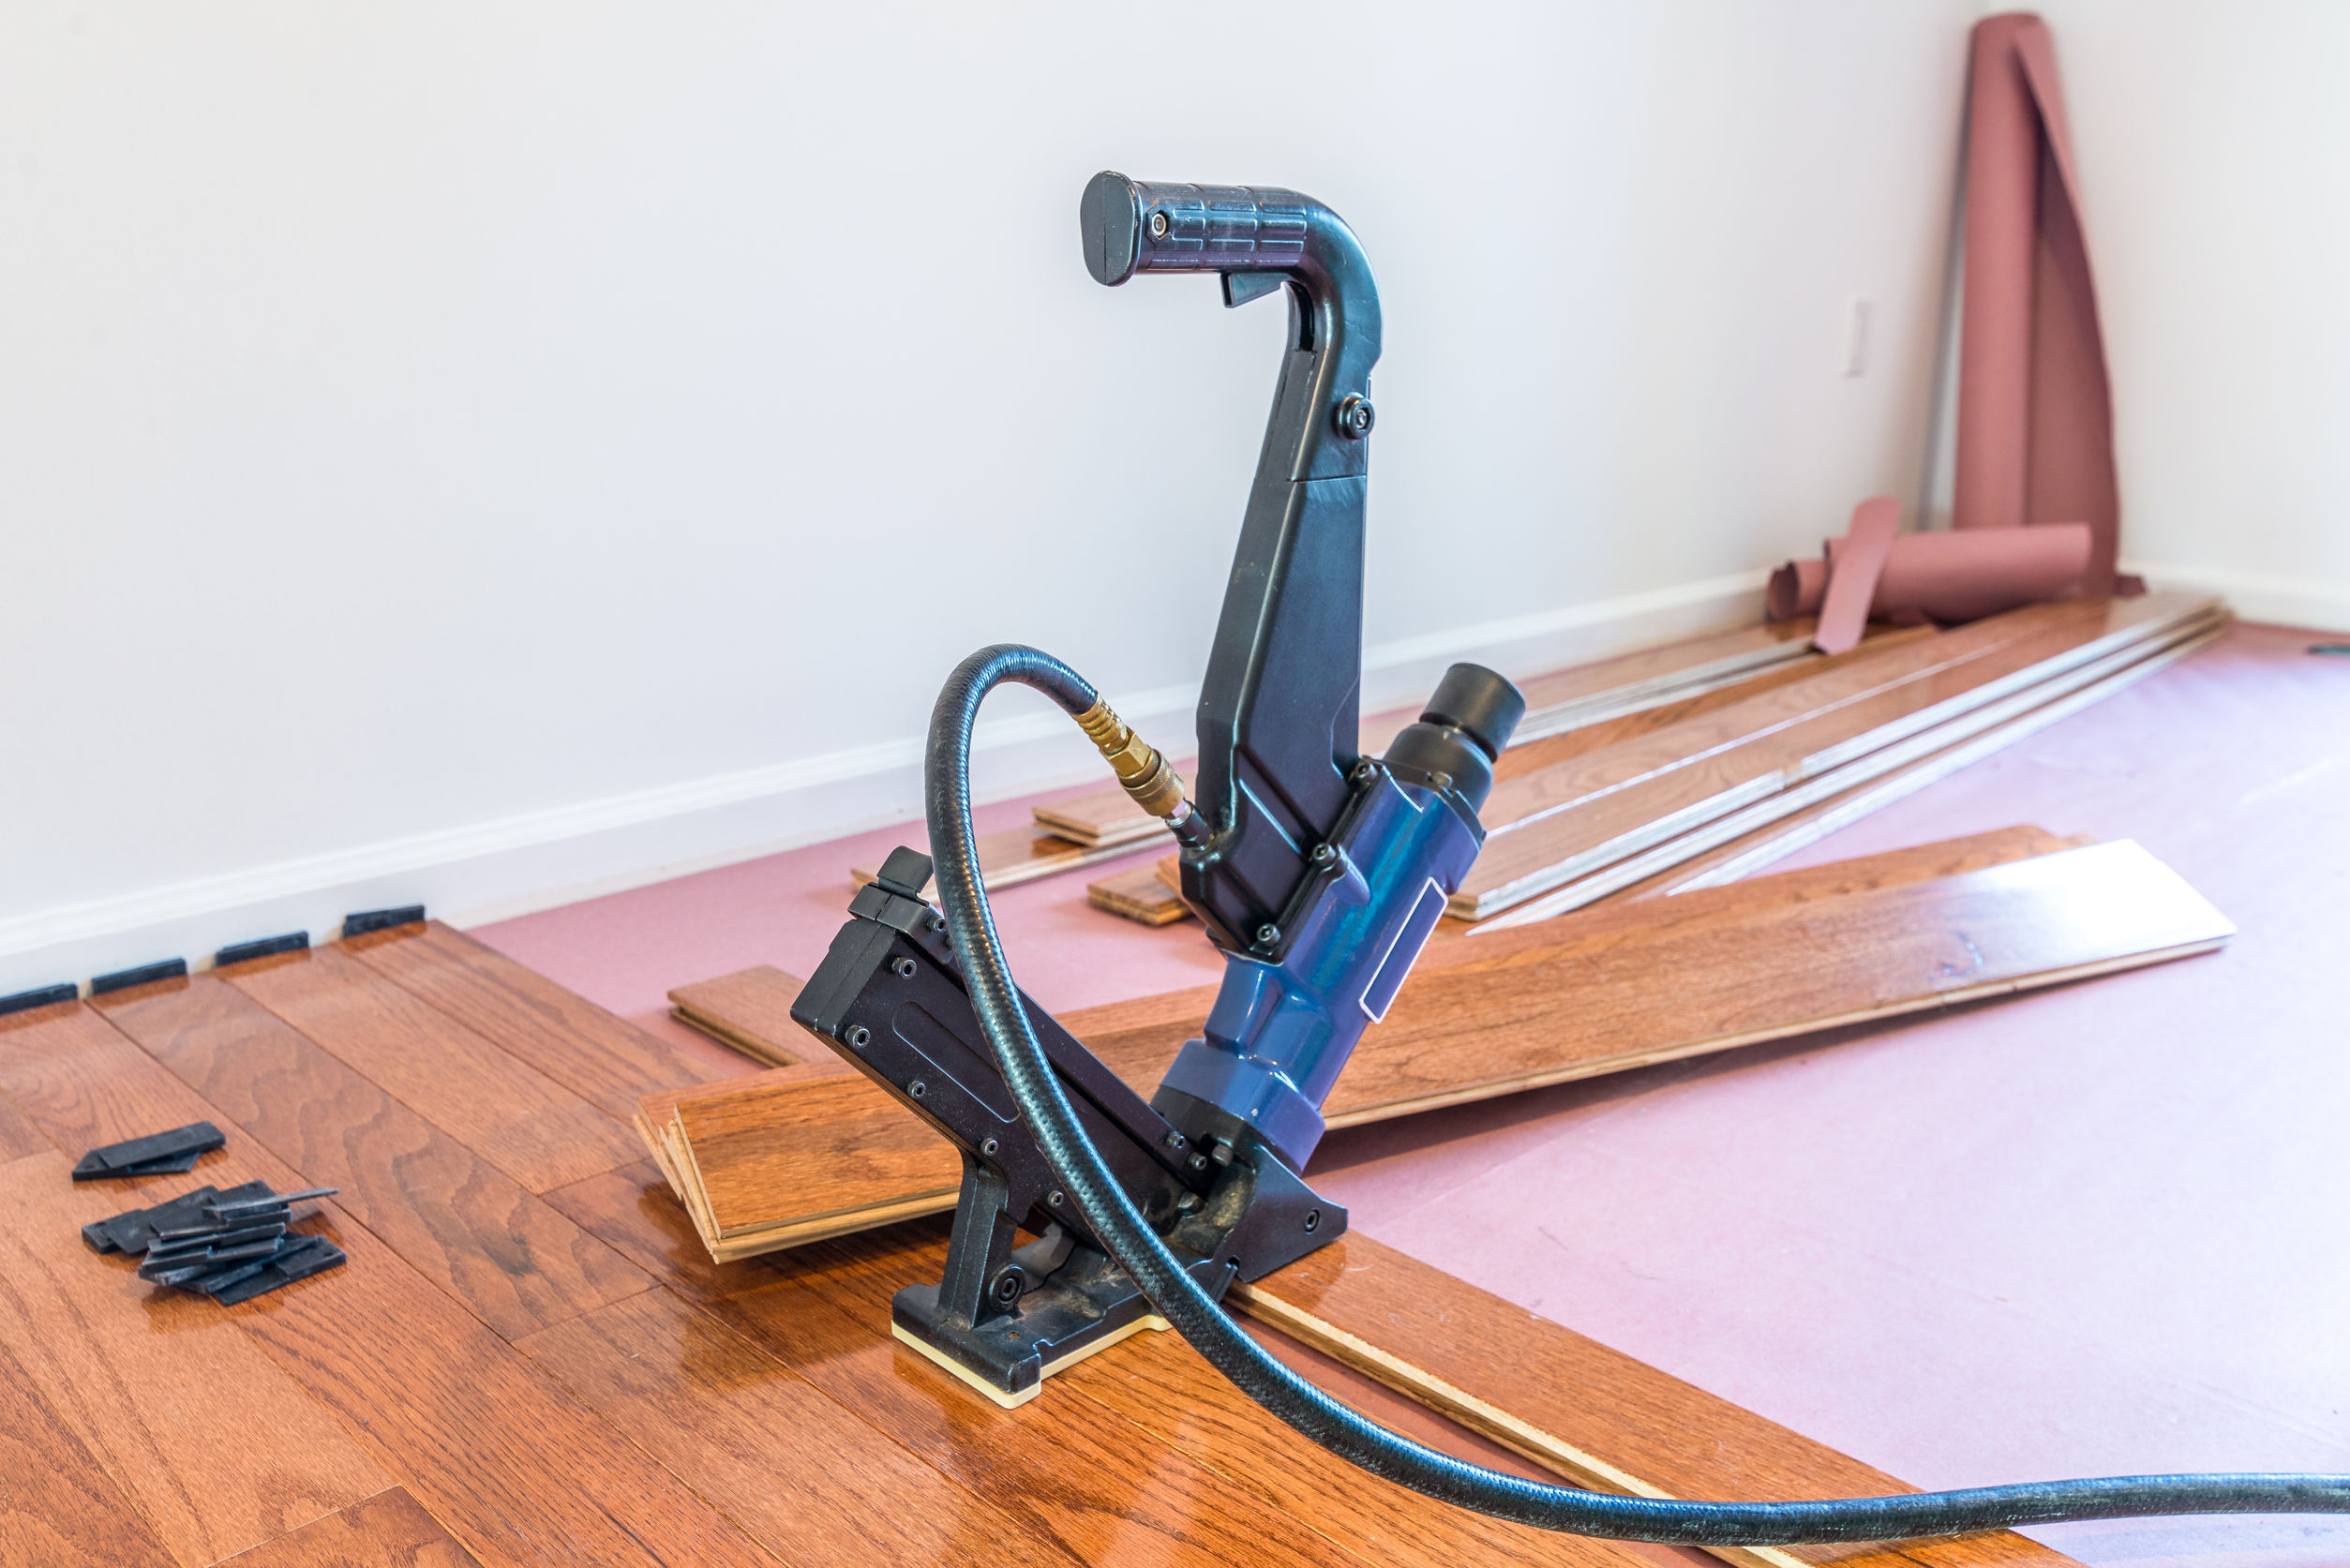 How to fix hardwood floors that squeak - In